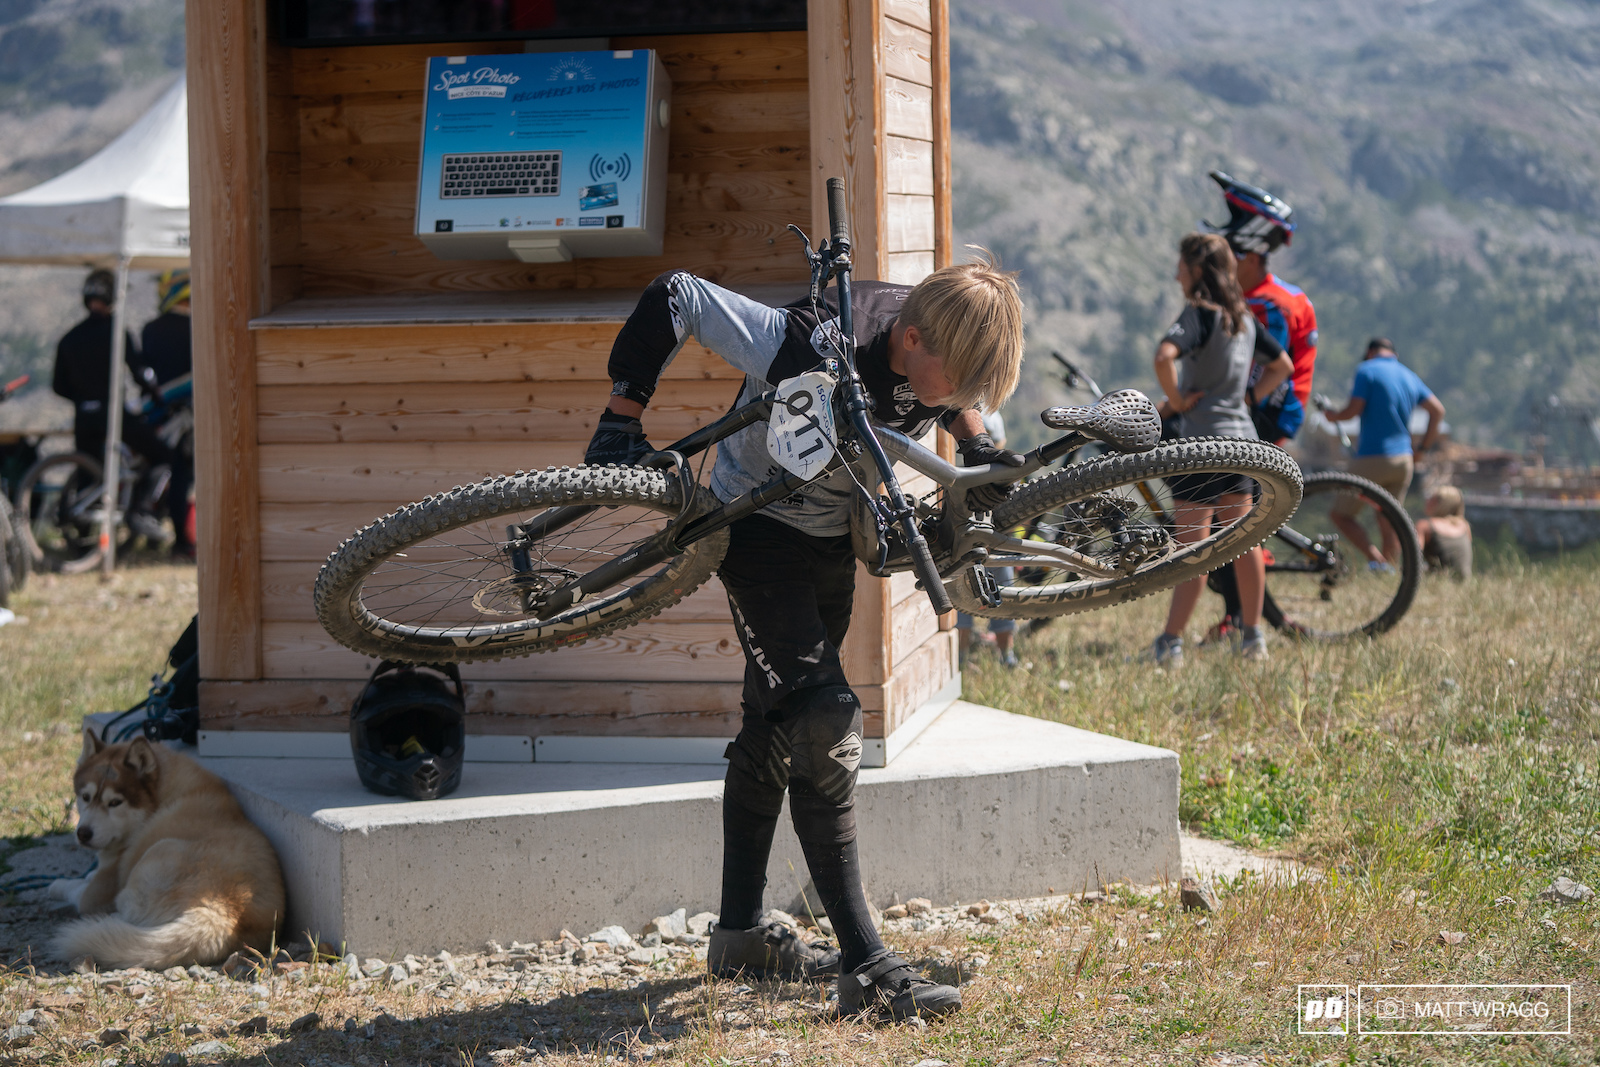 It may look odd doing bent-over rows with your race bike but as part of the Frejus club Jack Piercy is trained by Cecile and Cedric Ravanel and this is part of his pre-race warmup routine.